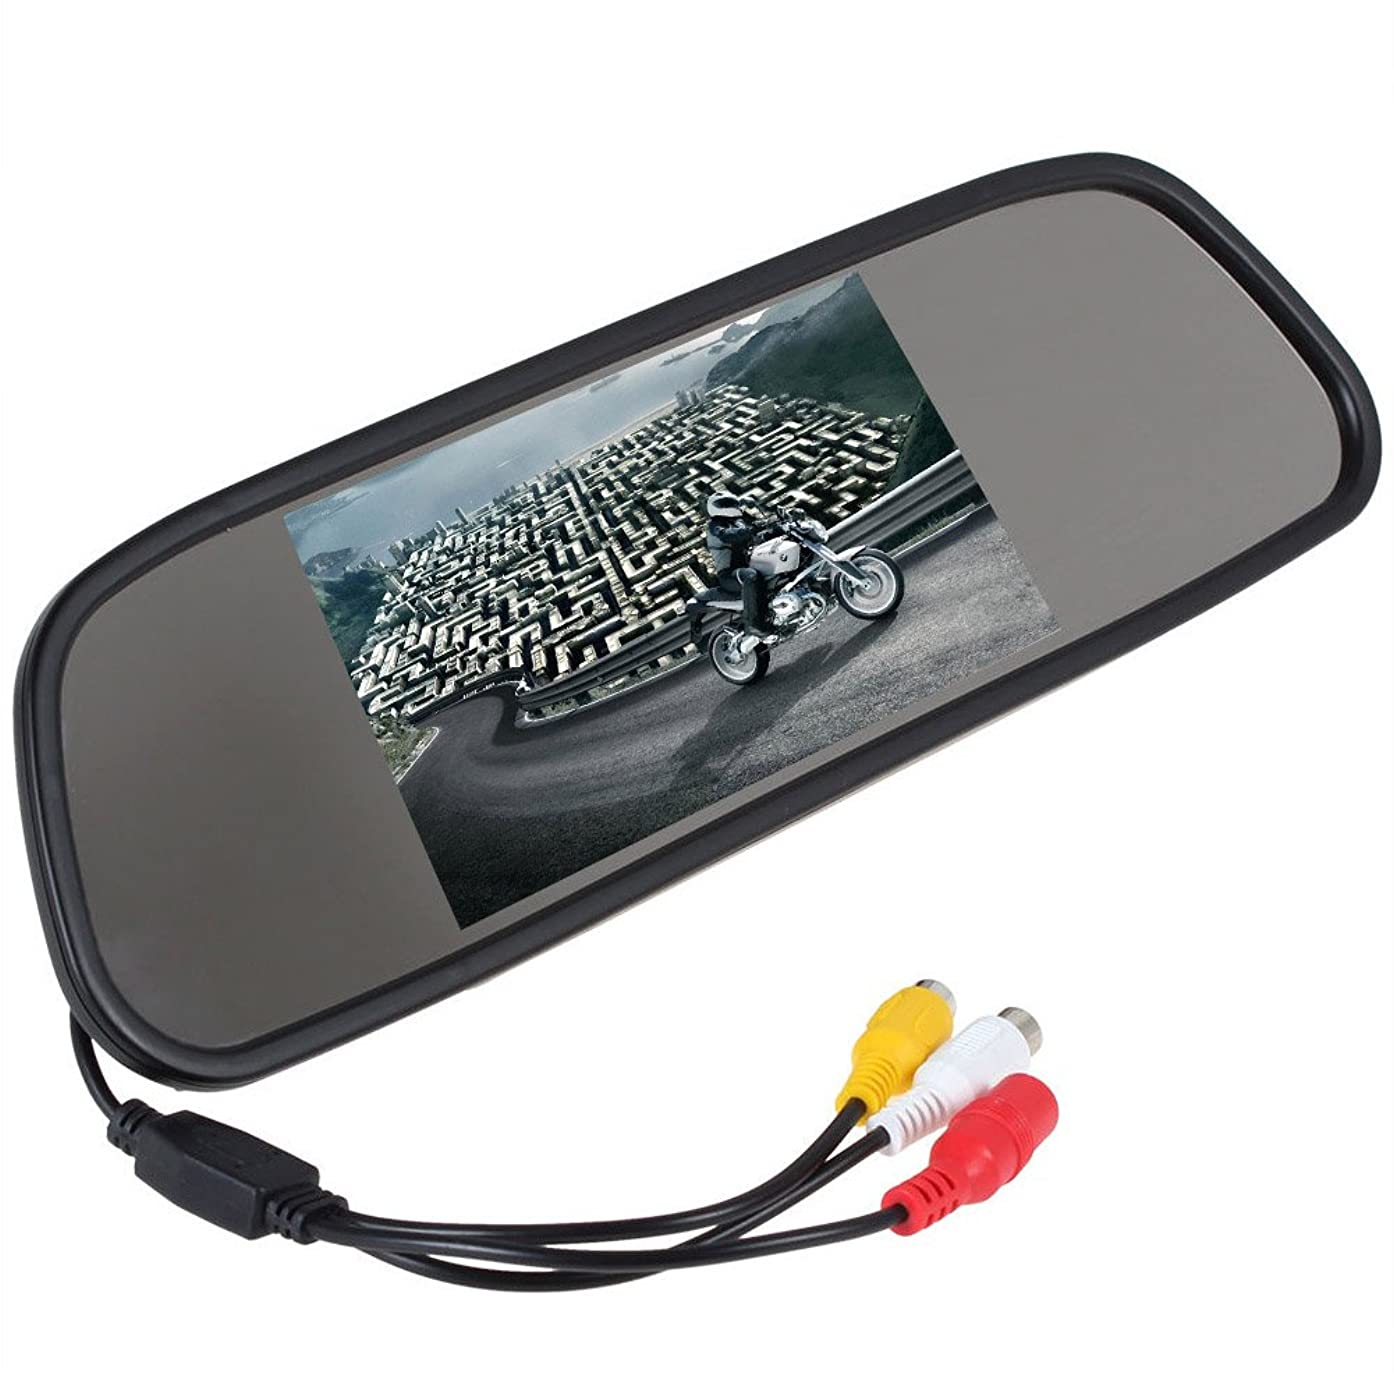 EinCar 5 Inch Color TFT LCD Screen Anti-Glaring Glasses Overhead Monitor PAL NTSC System 2 AV Input Auto Switching Car Monitoring System